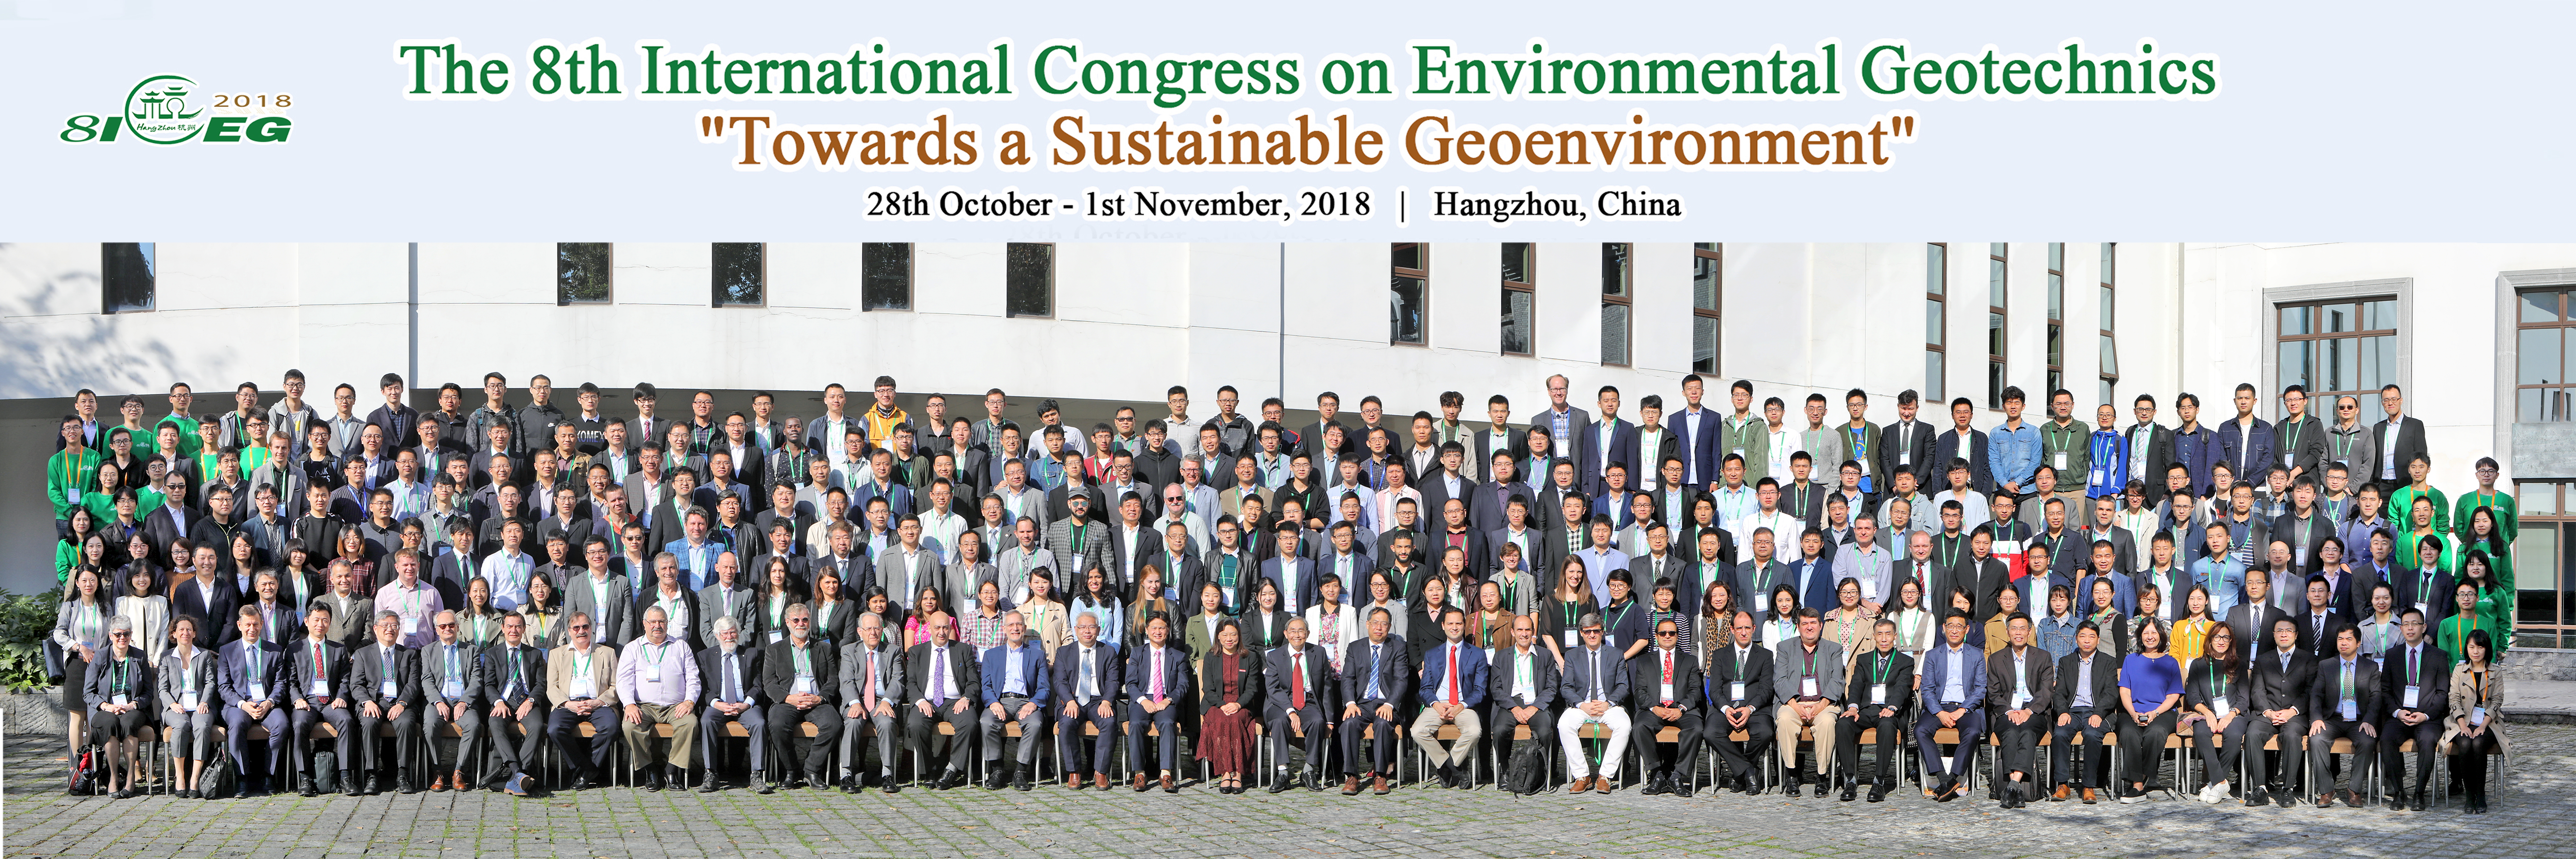 Participants of the 8th ICEG